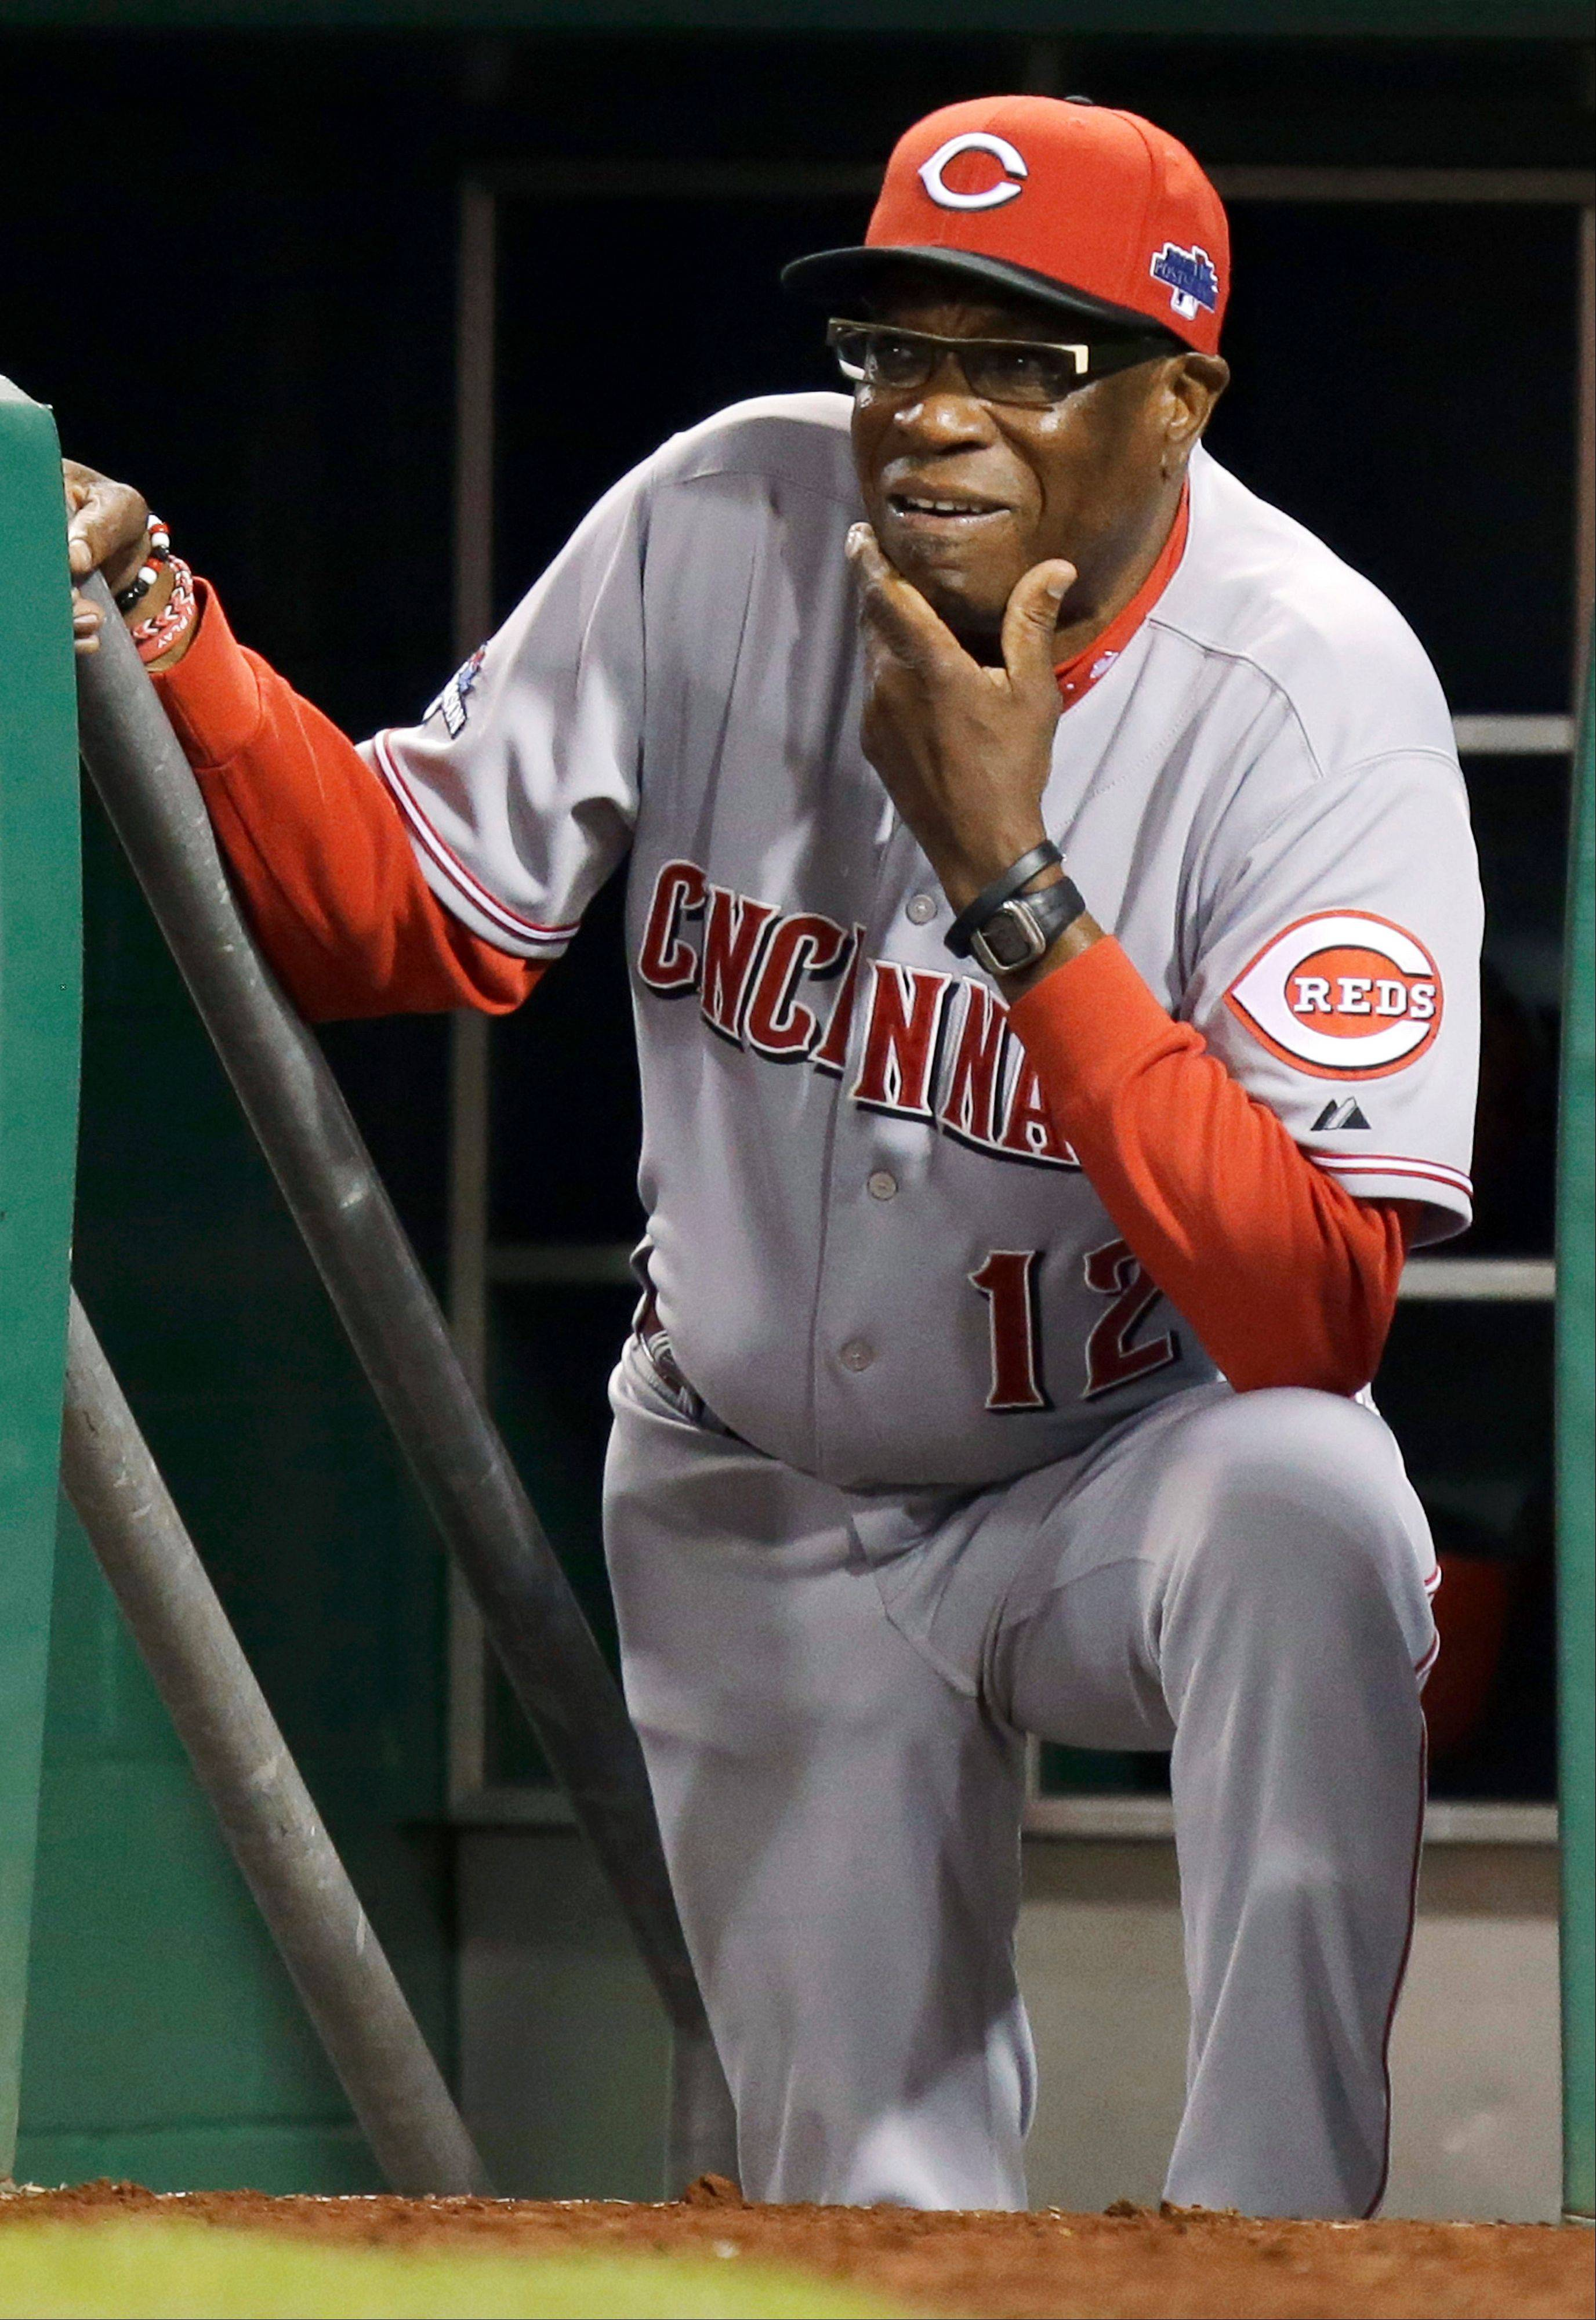 Cincinnati Reds manager Dusty Baker watches from the dugout steps as the Pittsburgh Pirates bat in the fifth inning of the NL wild-card playoff baseball game Tuesday, Oct. 1, 2013, in Pittsburgh.